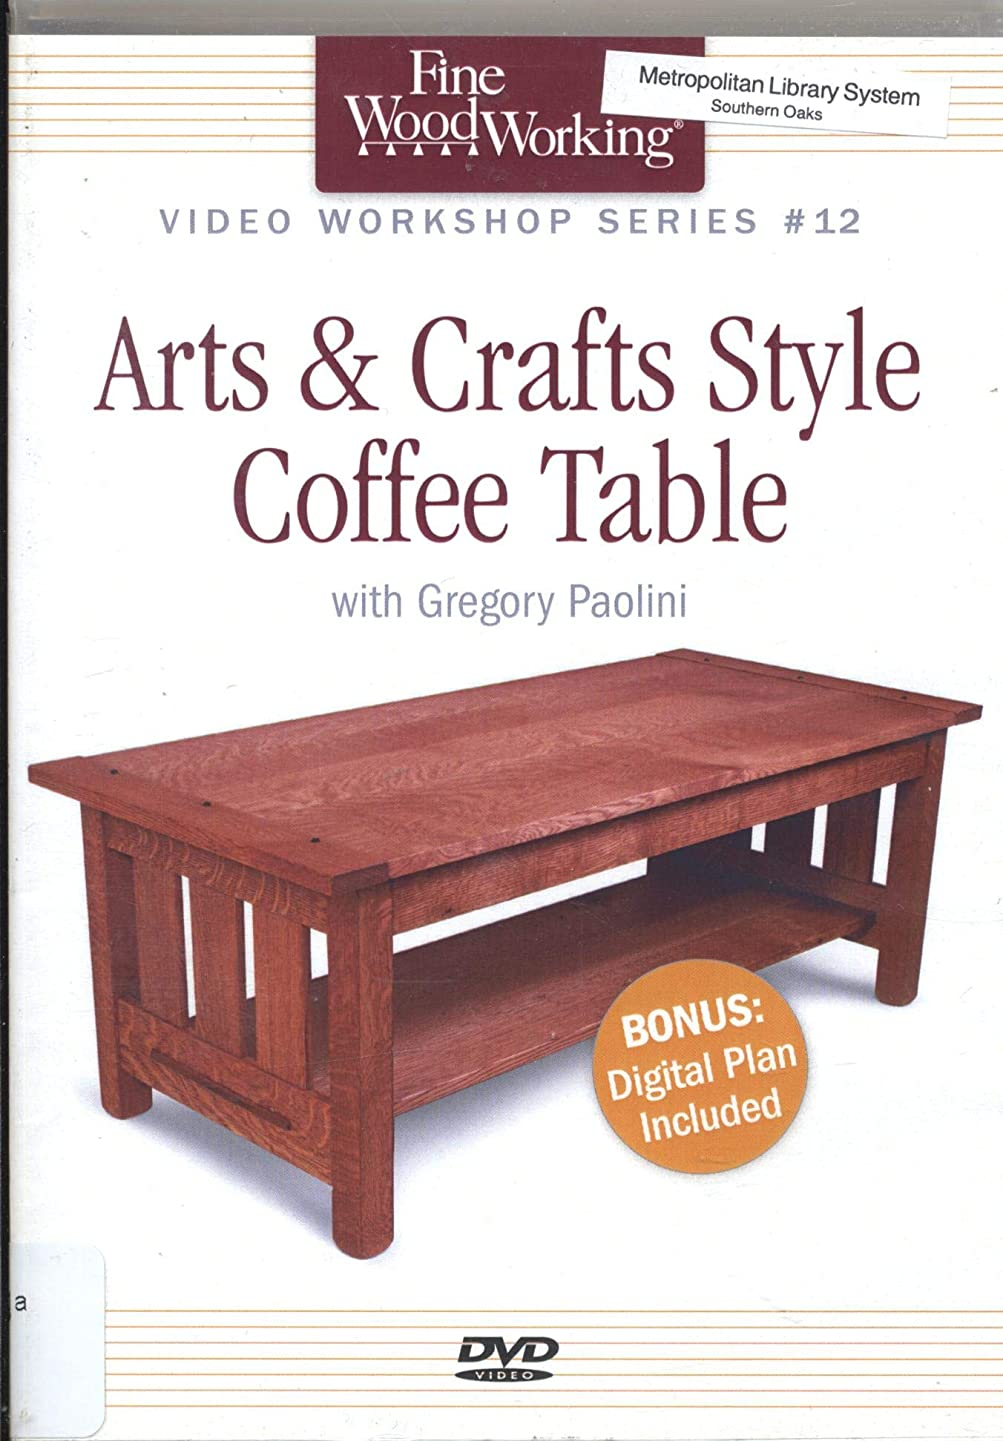 Arts & Crafts Coffee Table